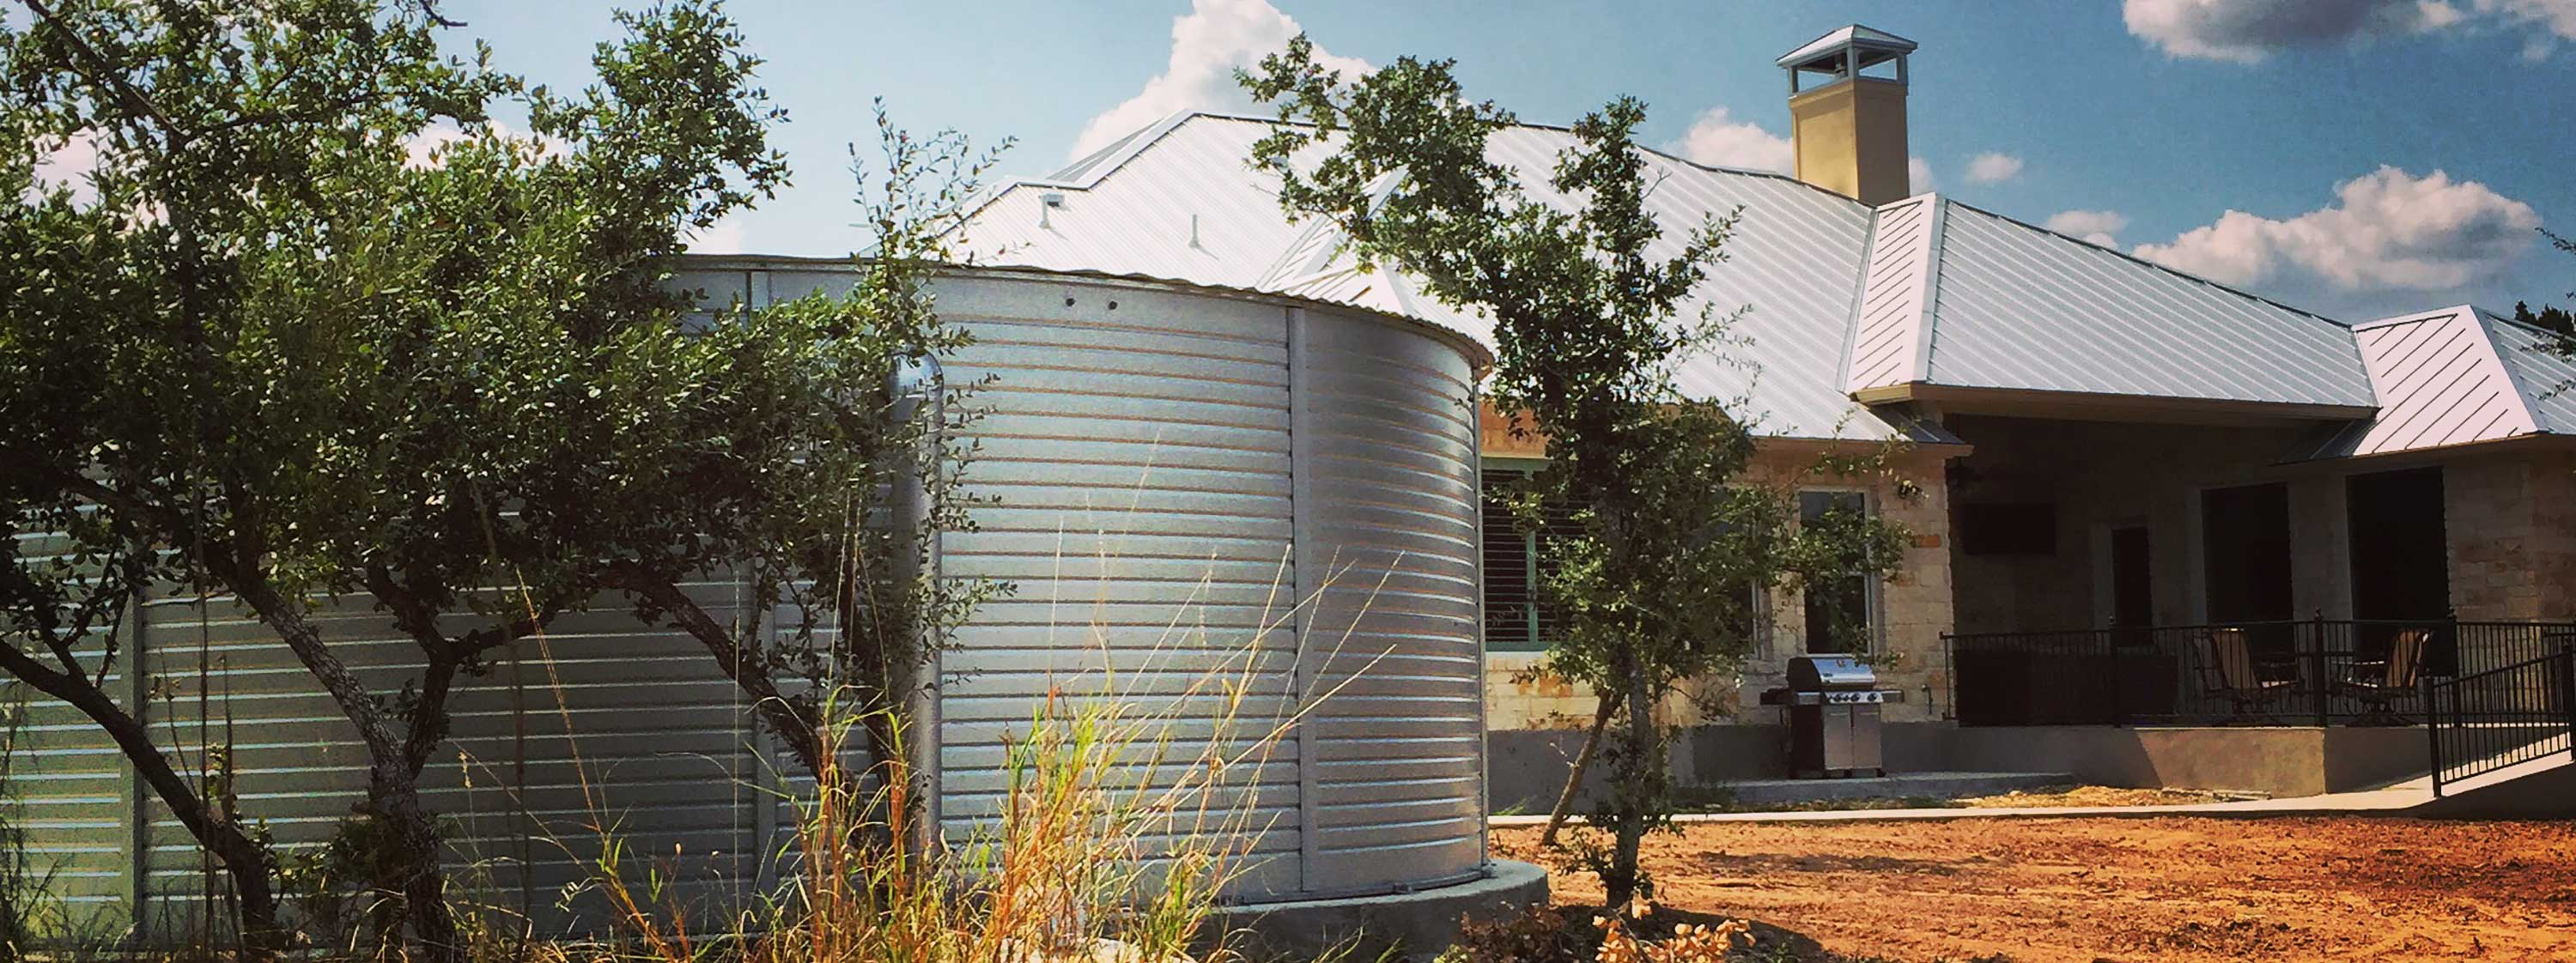 Drinking water storage tanks